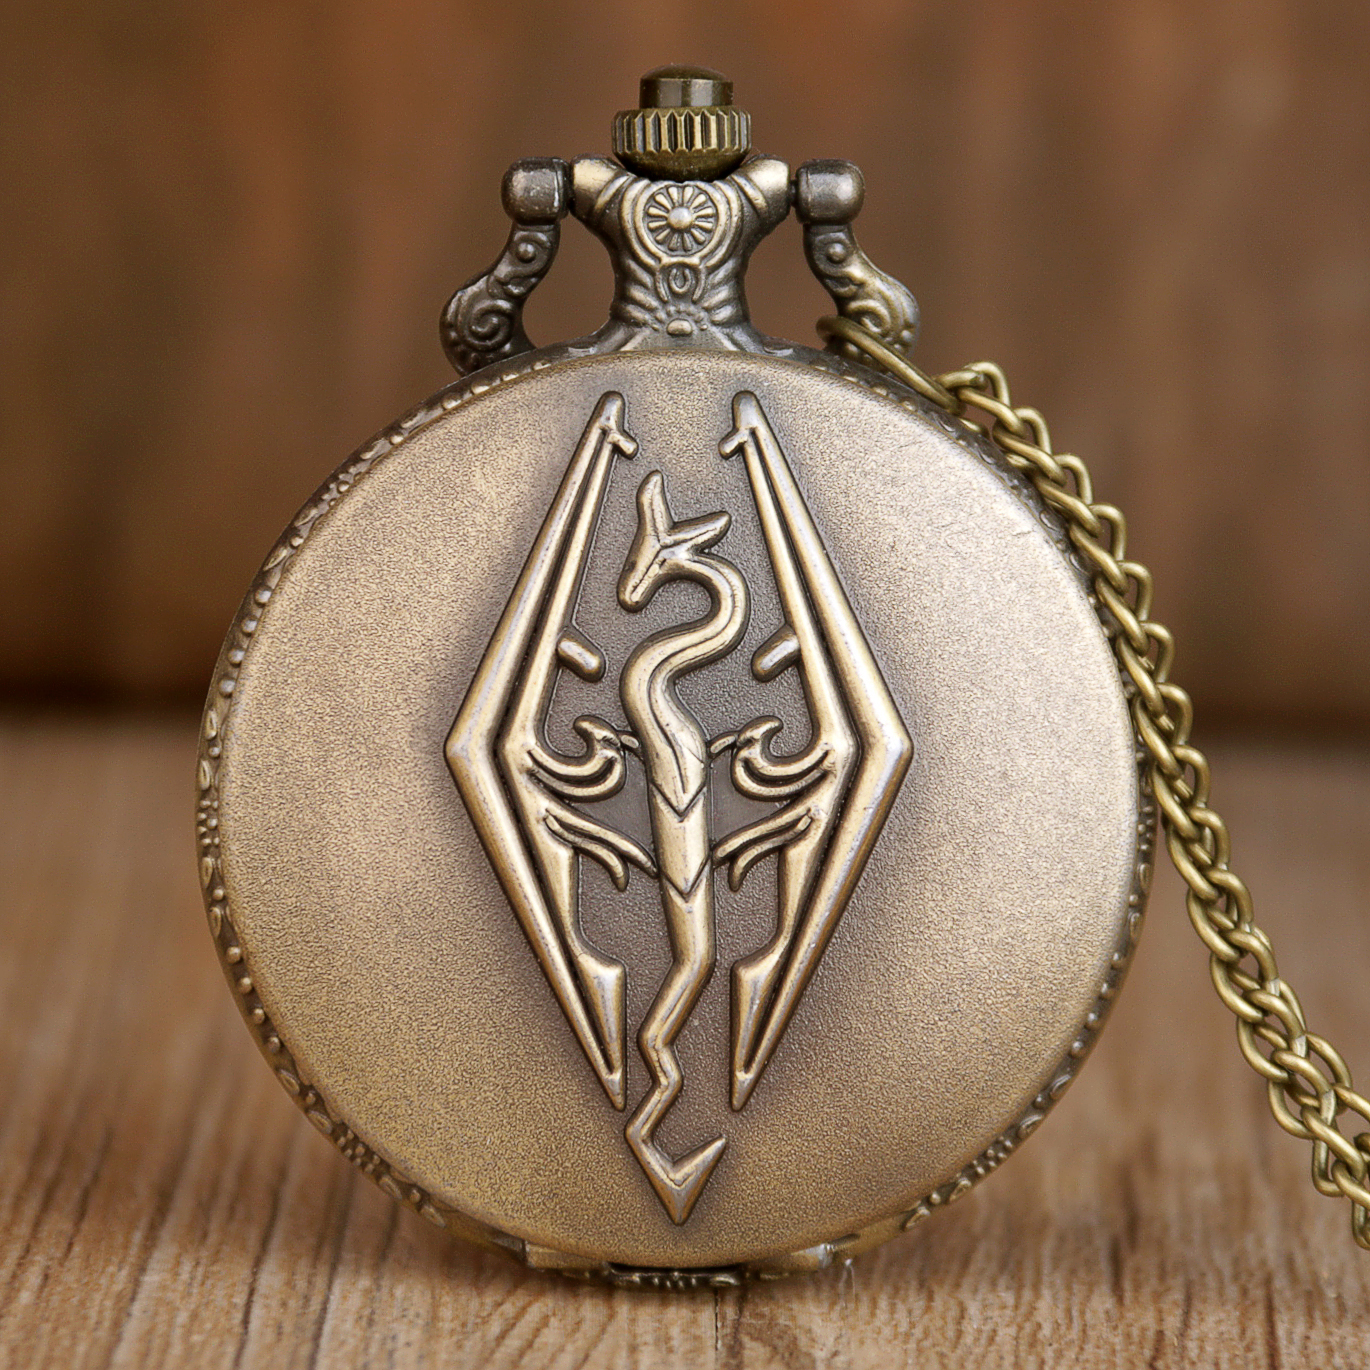 Vintage Quartz Pocket Watch The Elder Scrolls Skyrim Color Dial Analog Pendant Necklace Mens Womens Watch Gifts Variety Colors